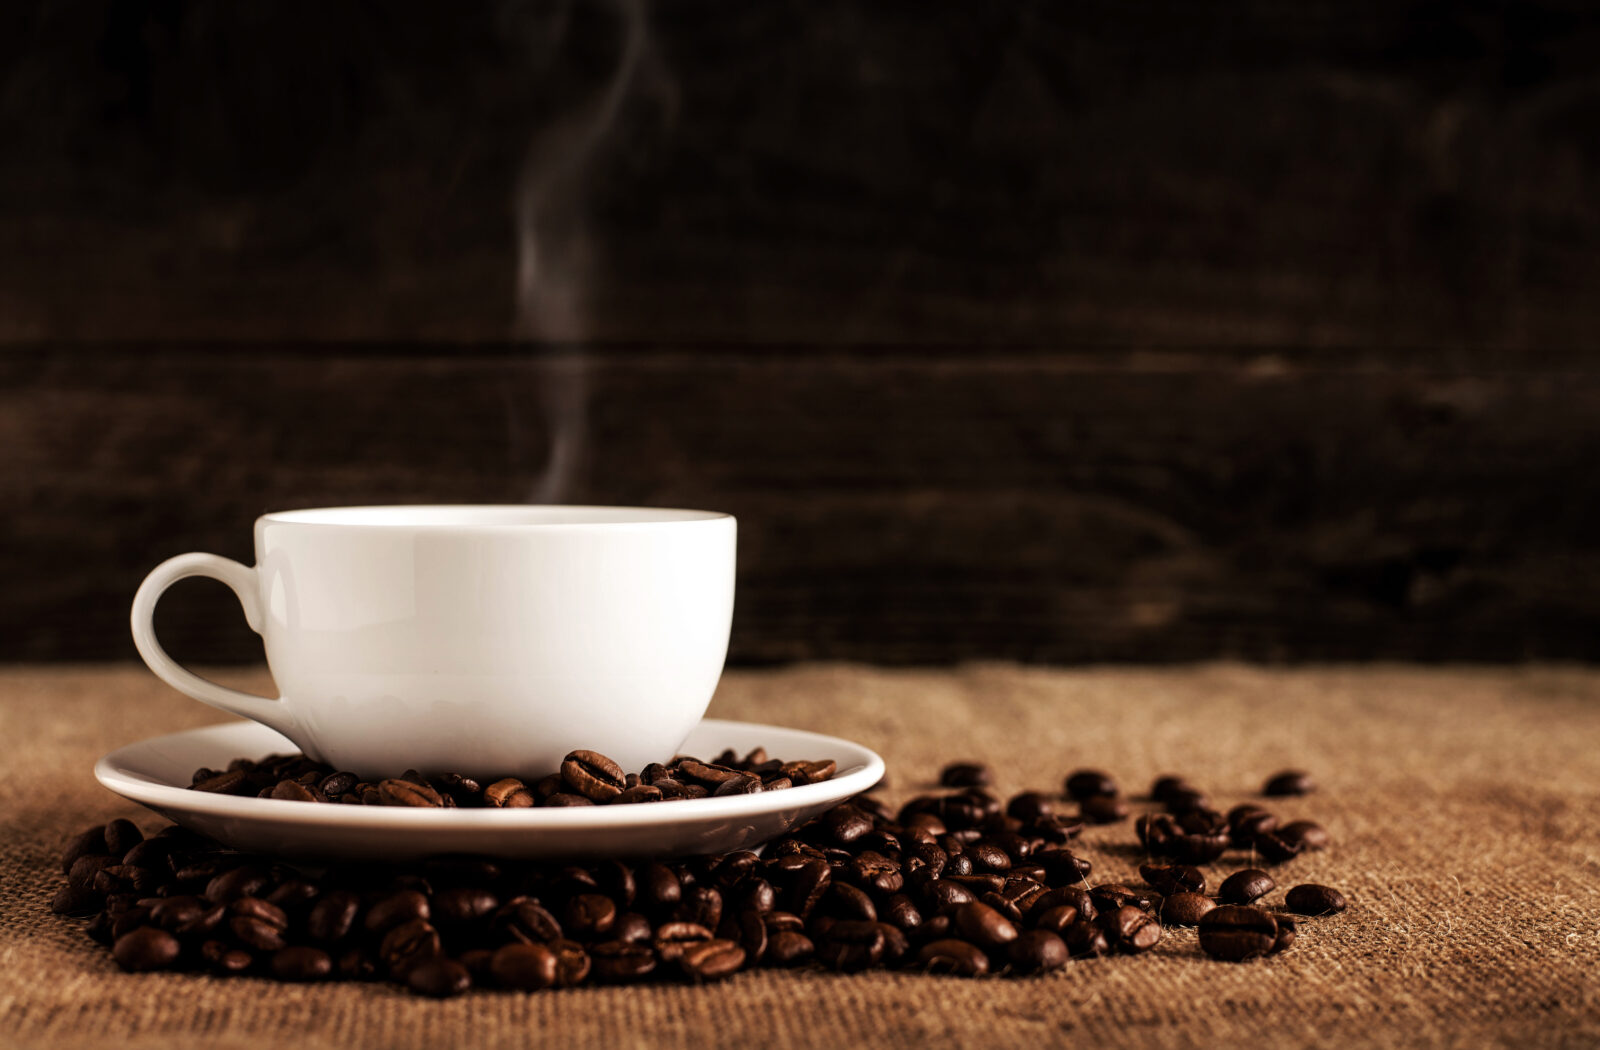 When is my coffee tax deductible?